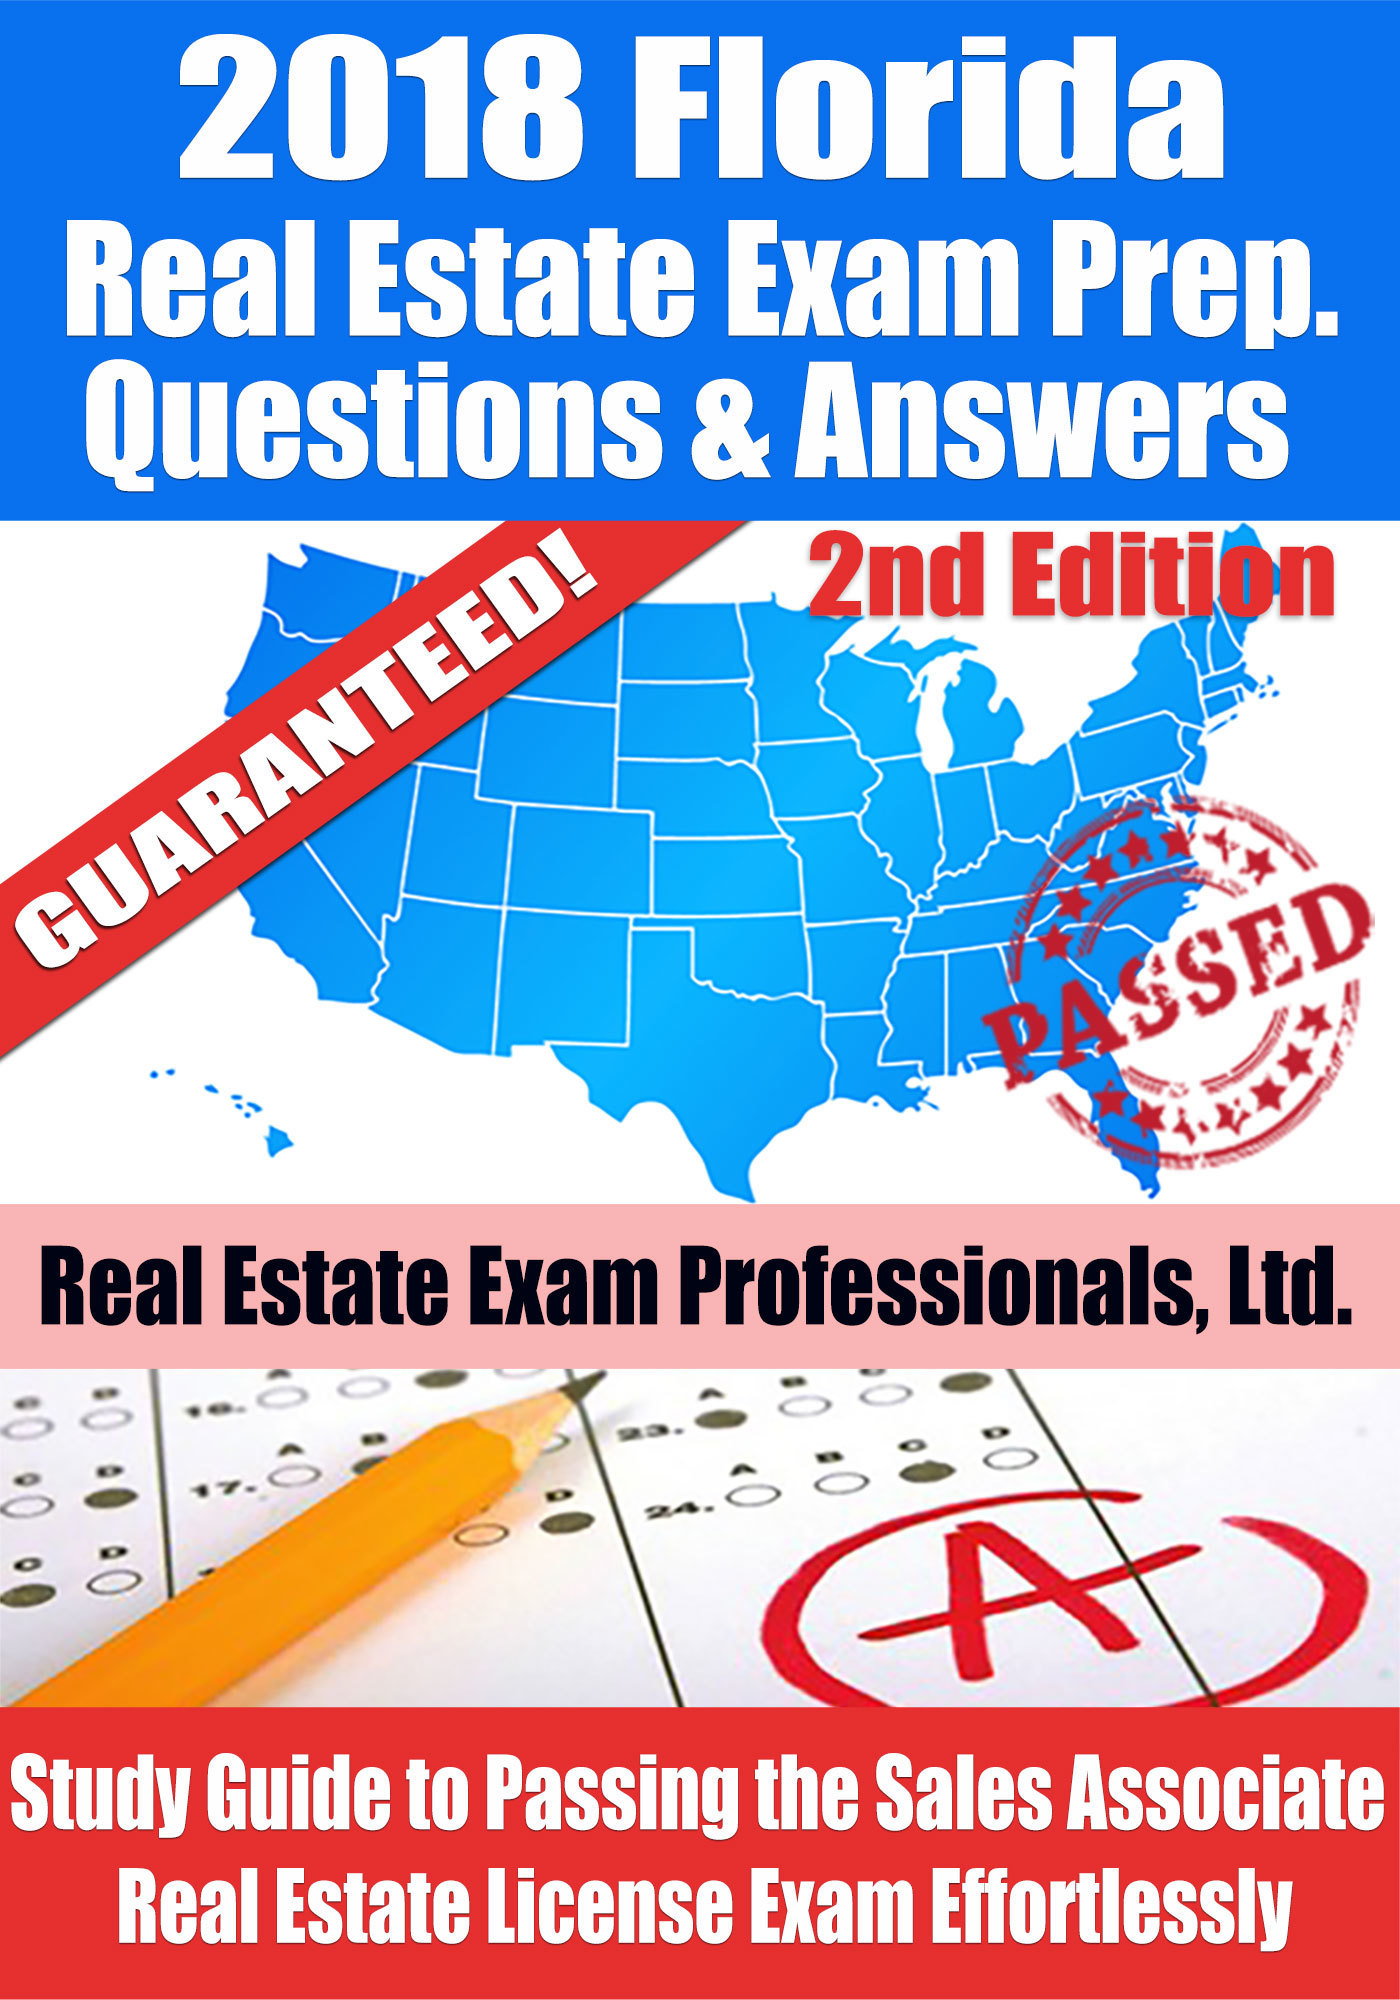 2018 Florida Real Estate Exam Prep Questions, Answers  Explanations: Study Guide to Passing the Sales Associate Real Estate License Exam Effortlessly